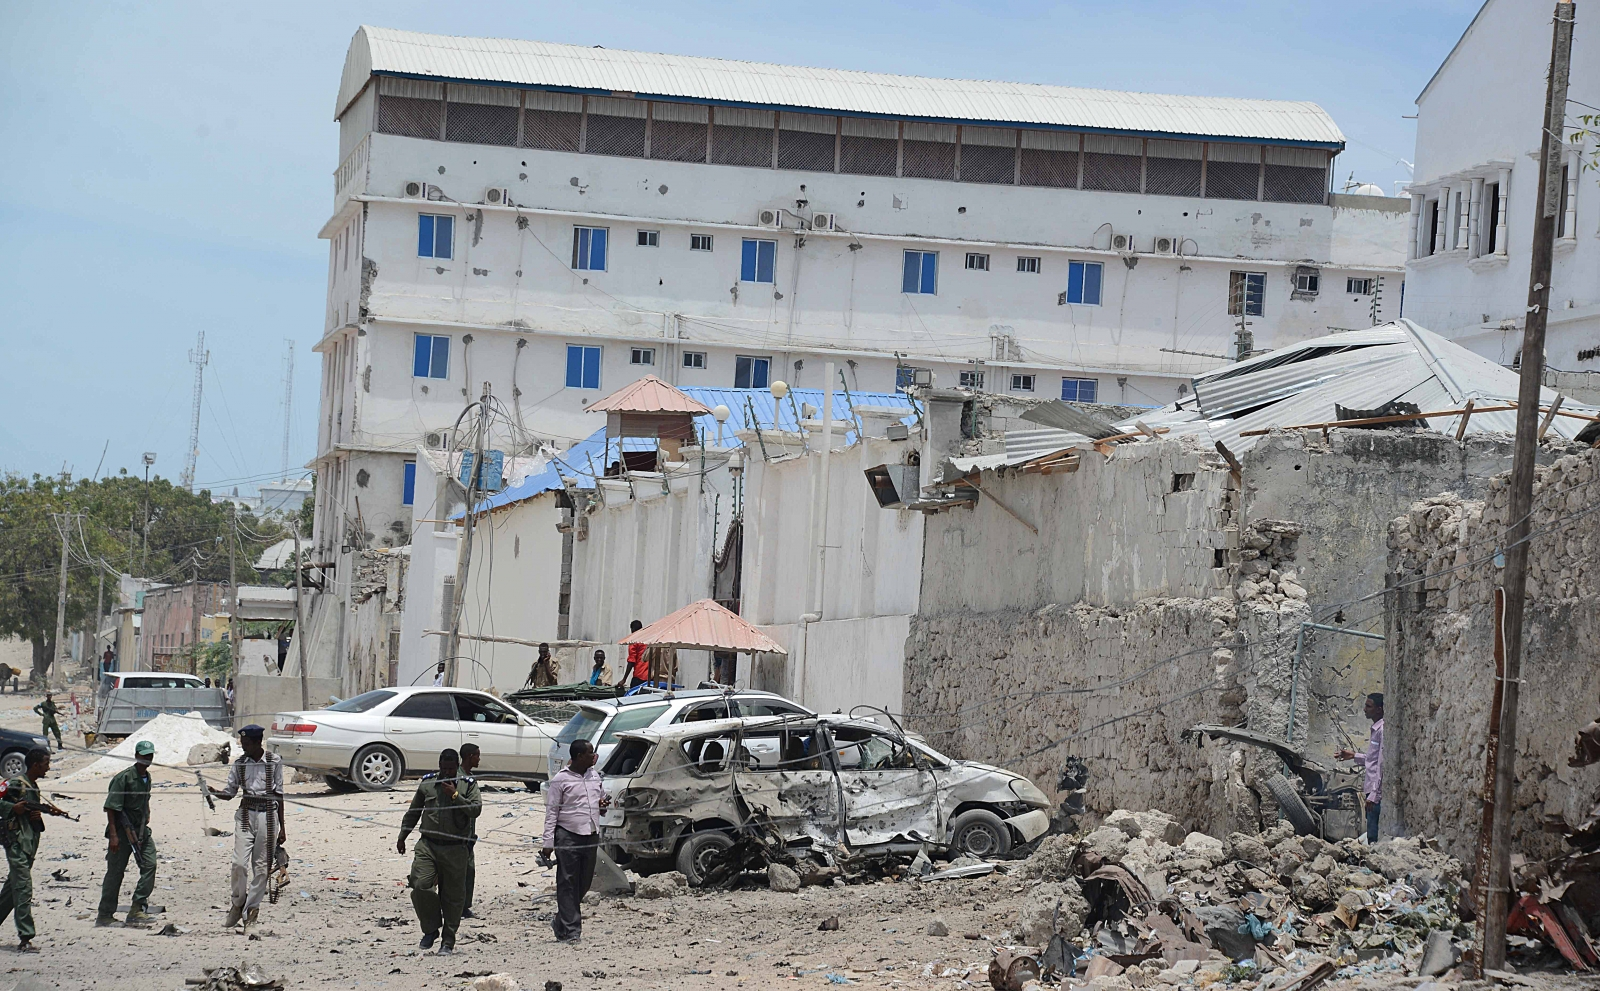 Mogadishu hotels have been previously targetted by al Shabaab militants. This picture shows the aftermath of an attack in January last year on the Makka Al Mukarrama Hotel. (Getty)